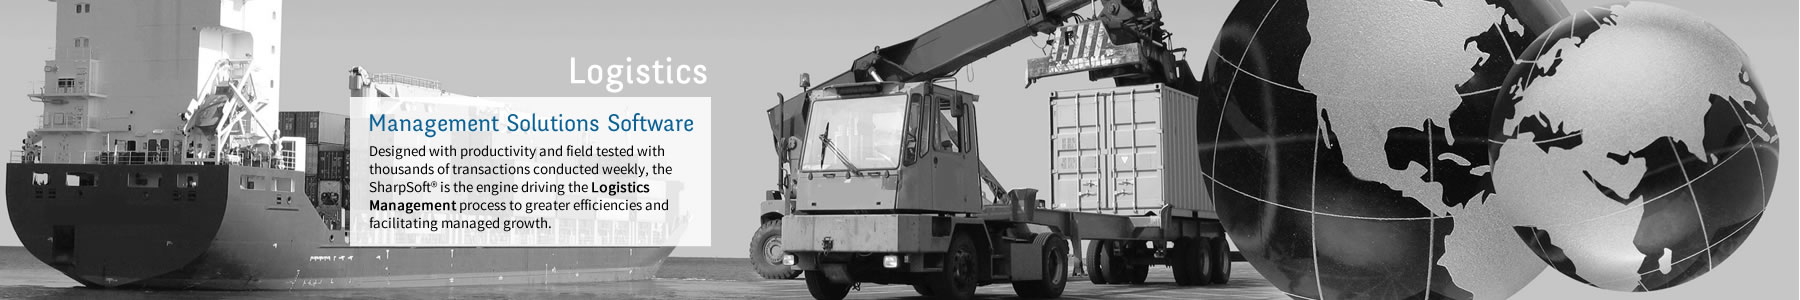 Recycling and Construction Waste Management Solutions